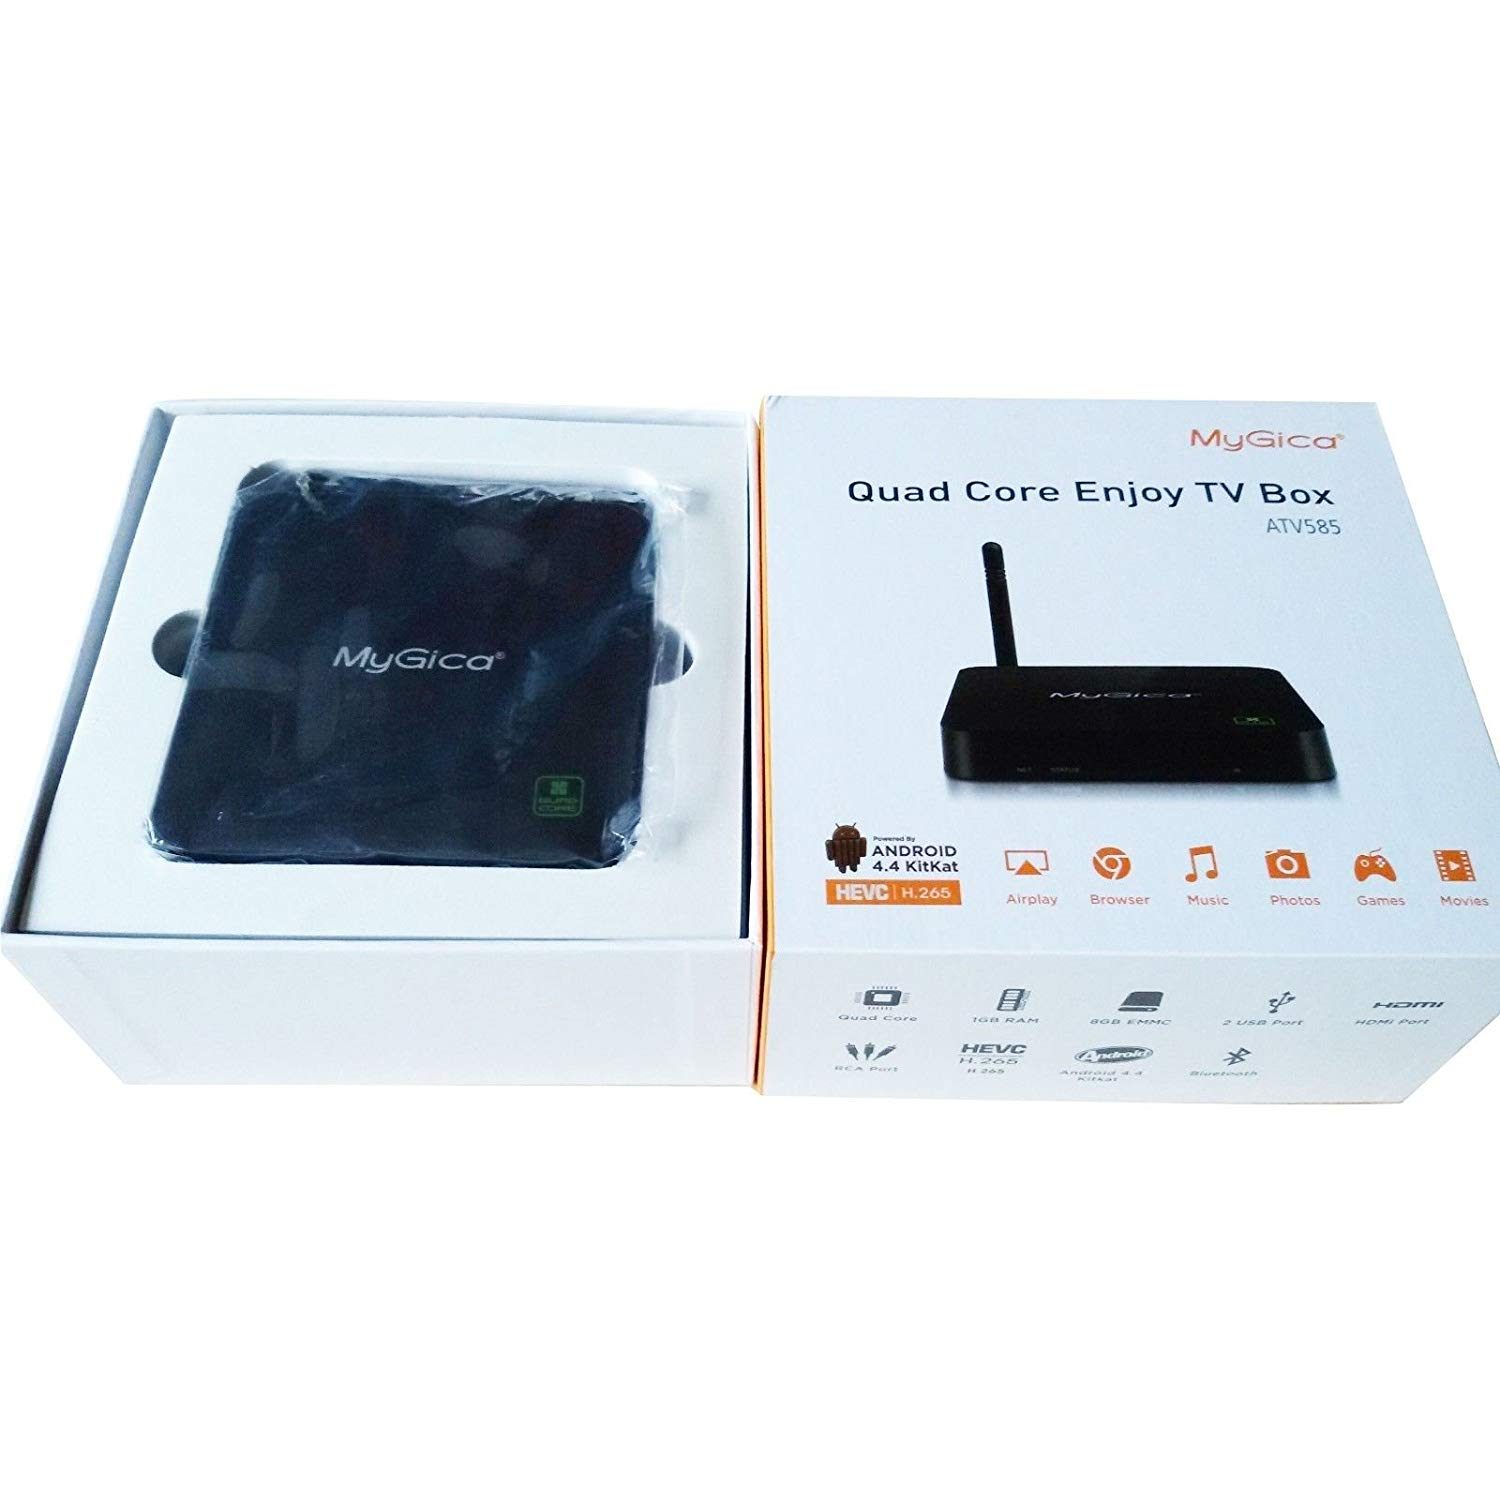 Cheap Geniatech Android Tv, find Geniatech Android Tv deals